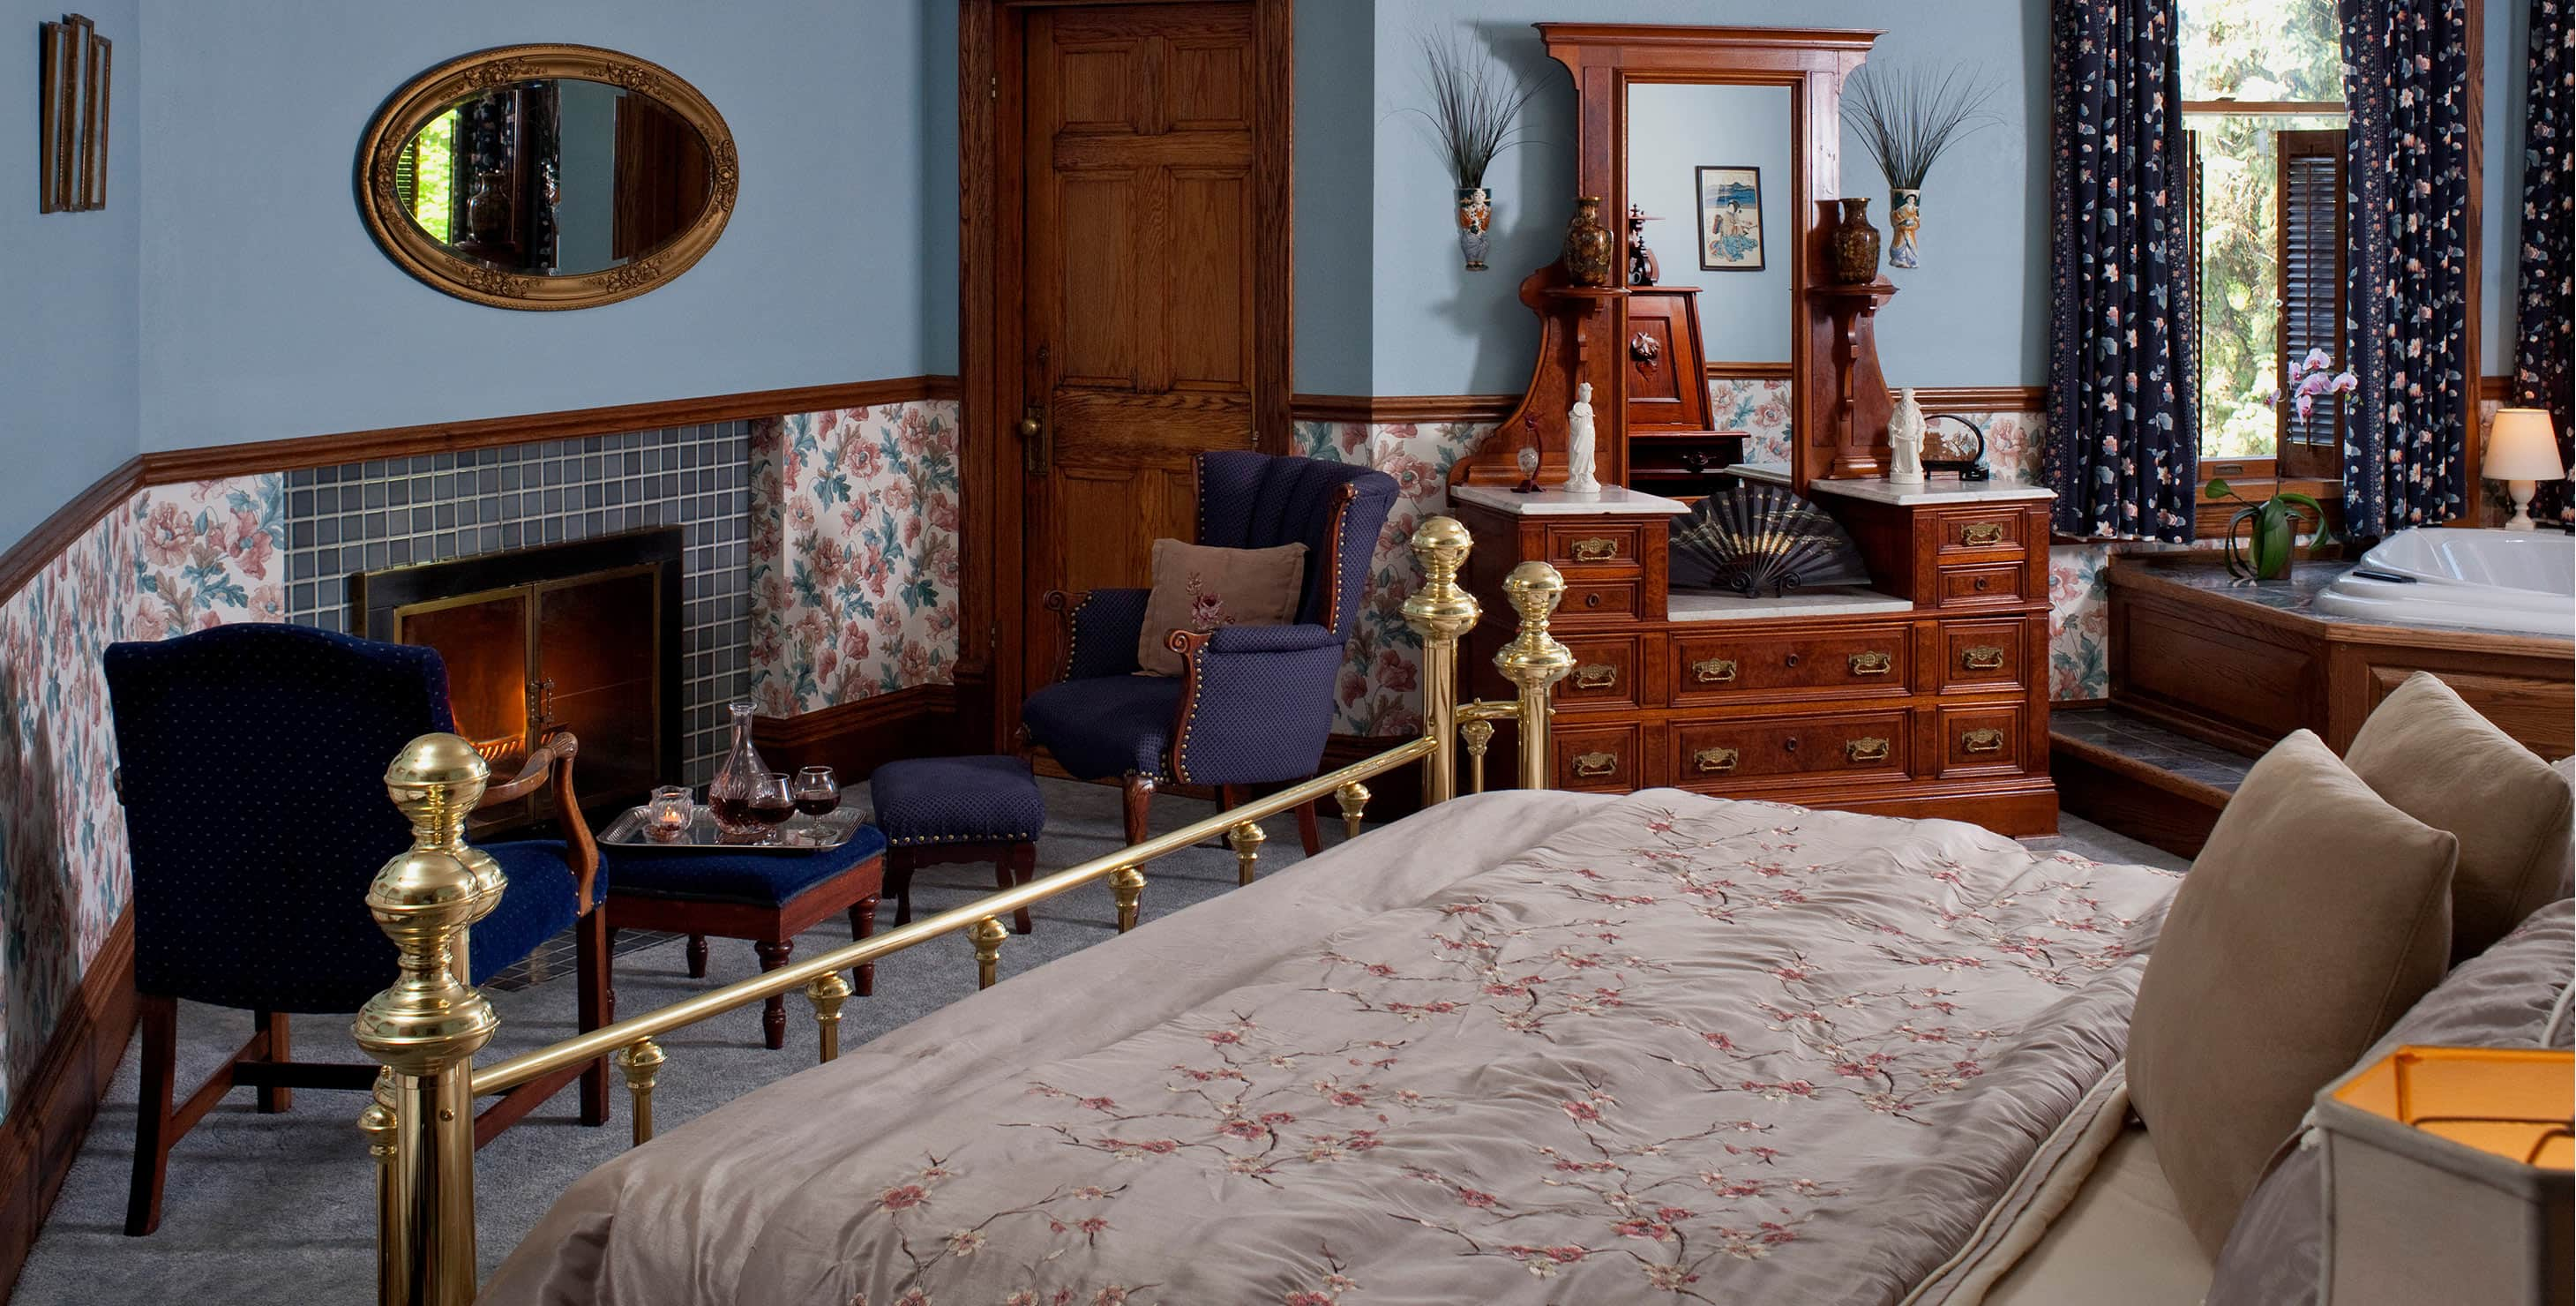 Bed and decorative fireplace in Room VII